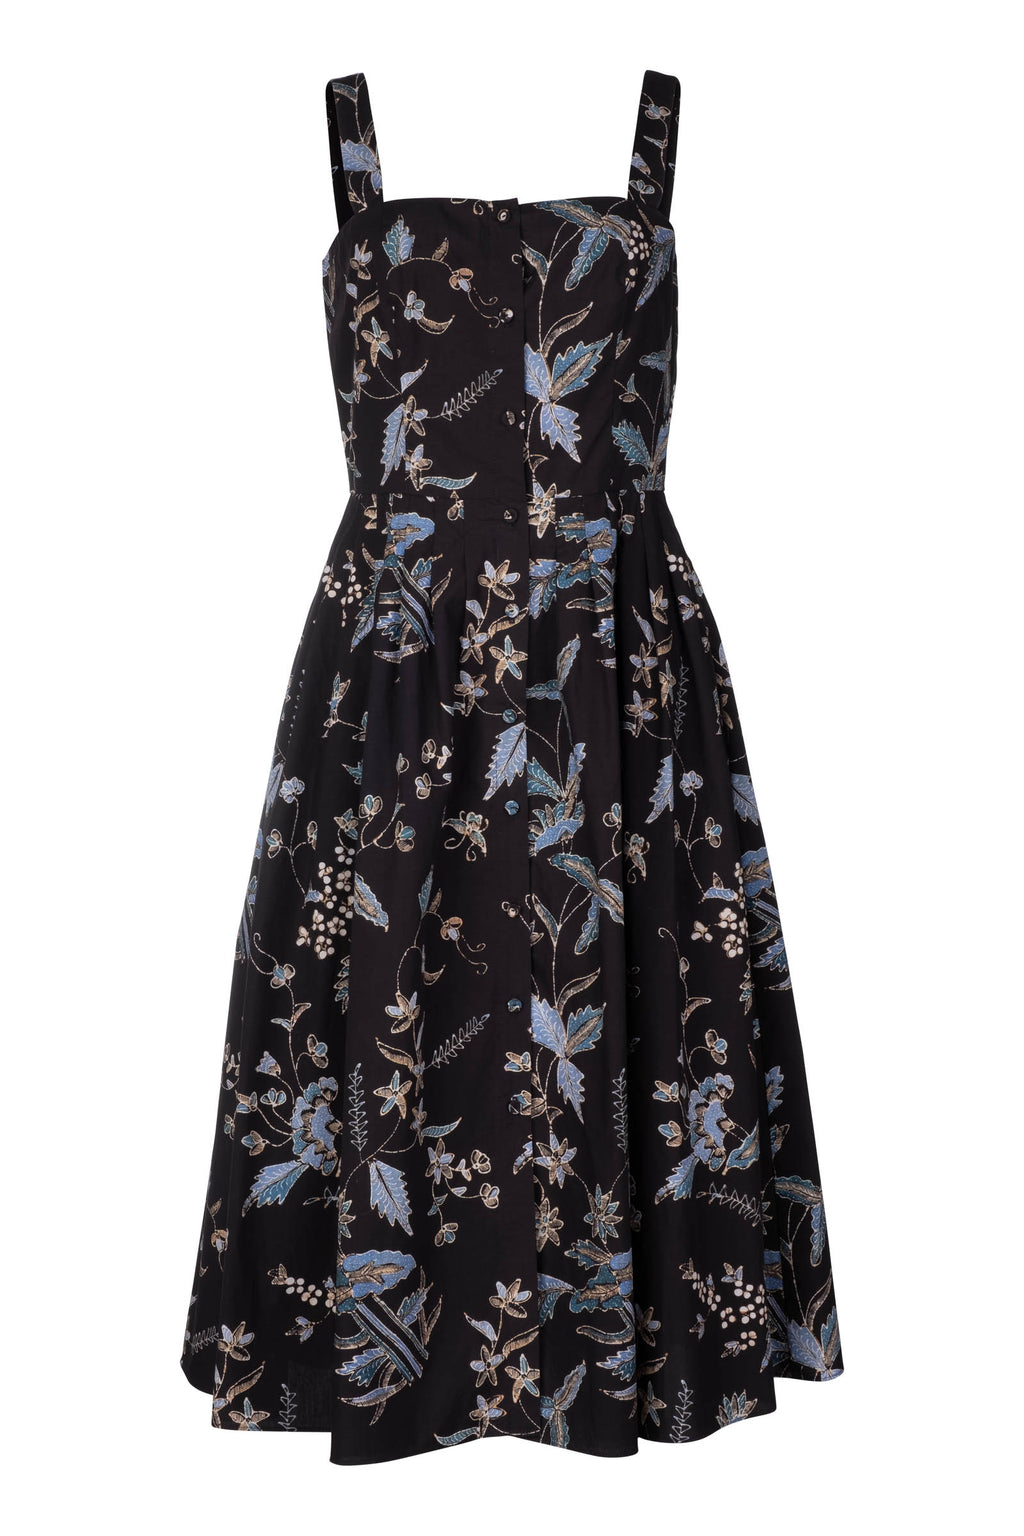 Garden Dress - Navy Jasmine Batik - Pre Order